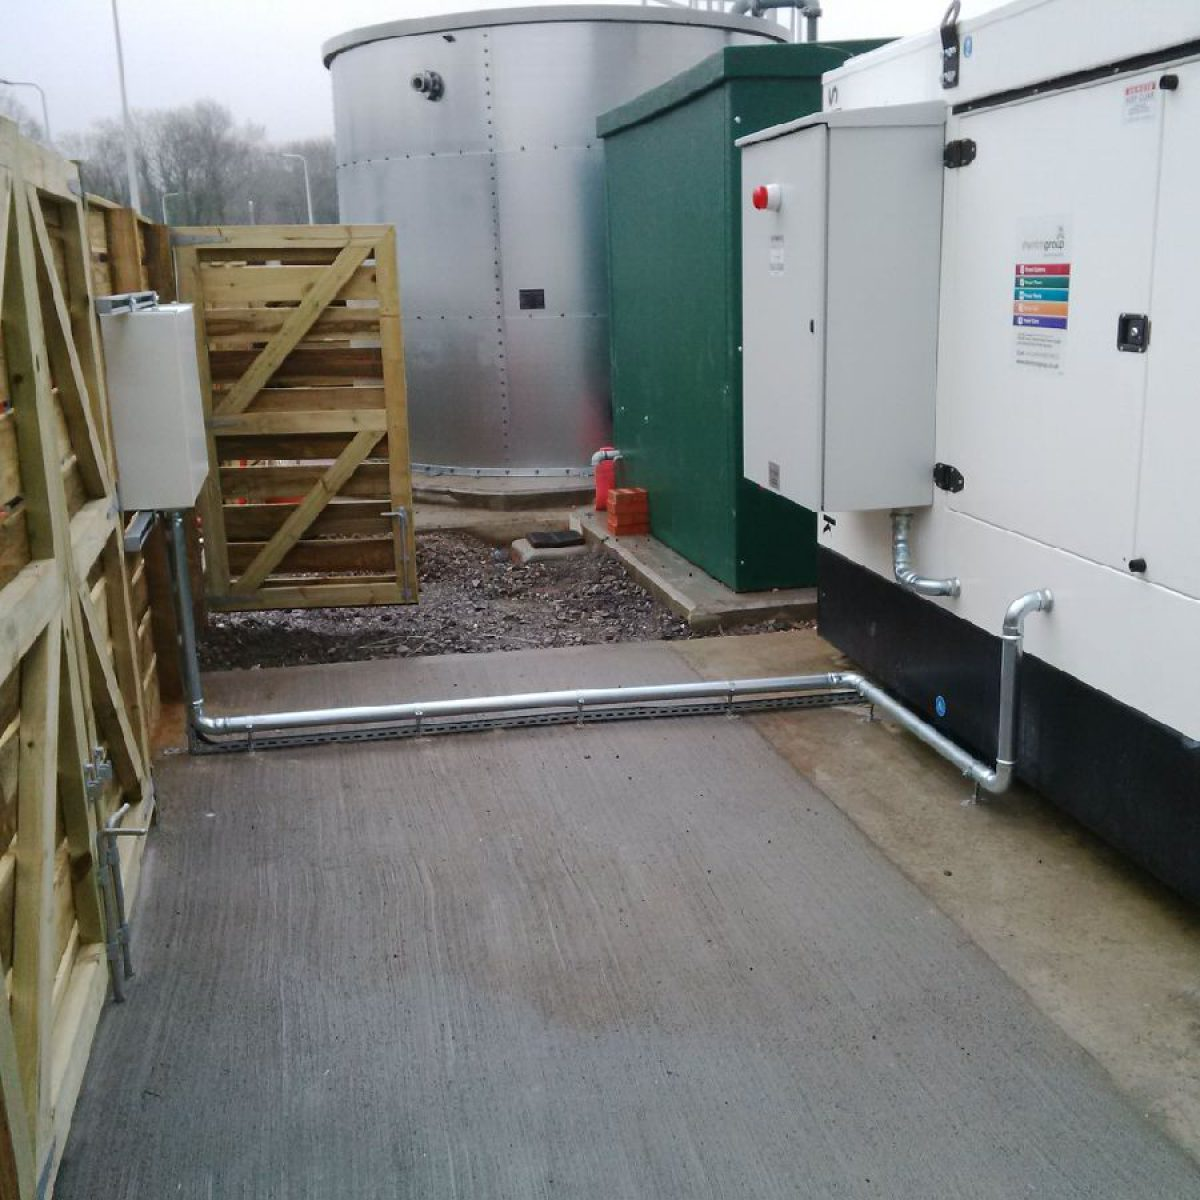 Delivering a Complete Standby Power System for 24/7 Fire Service